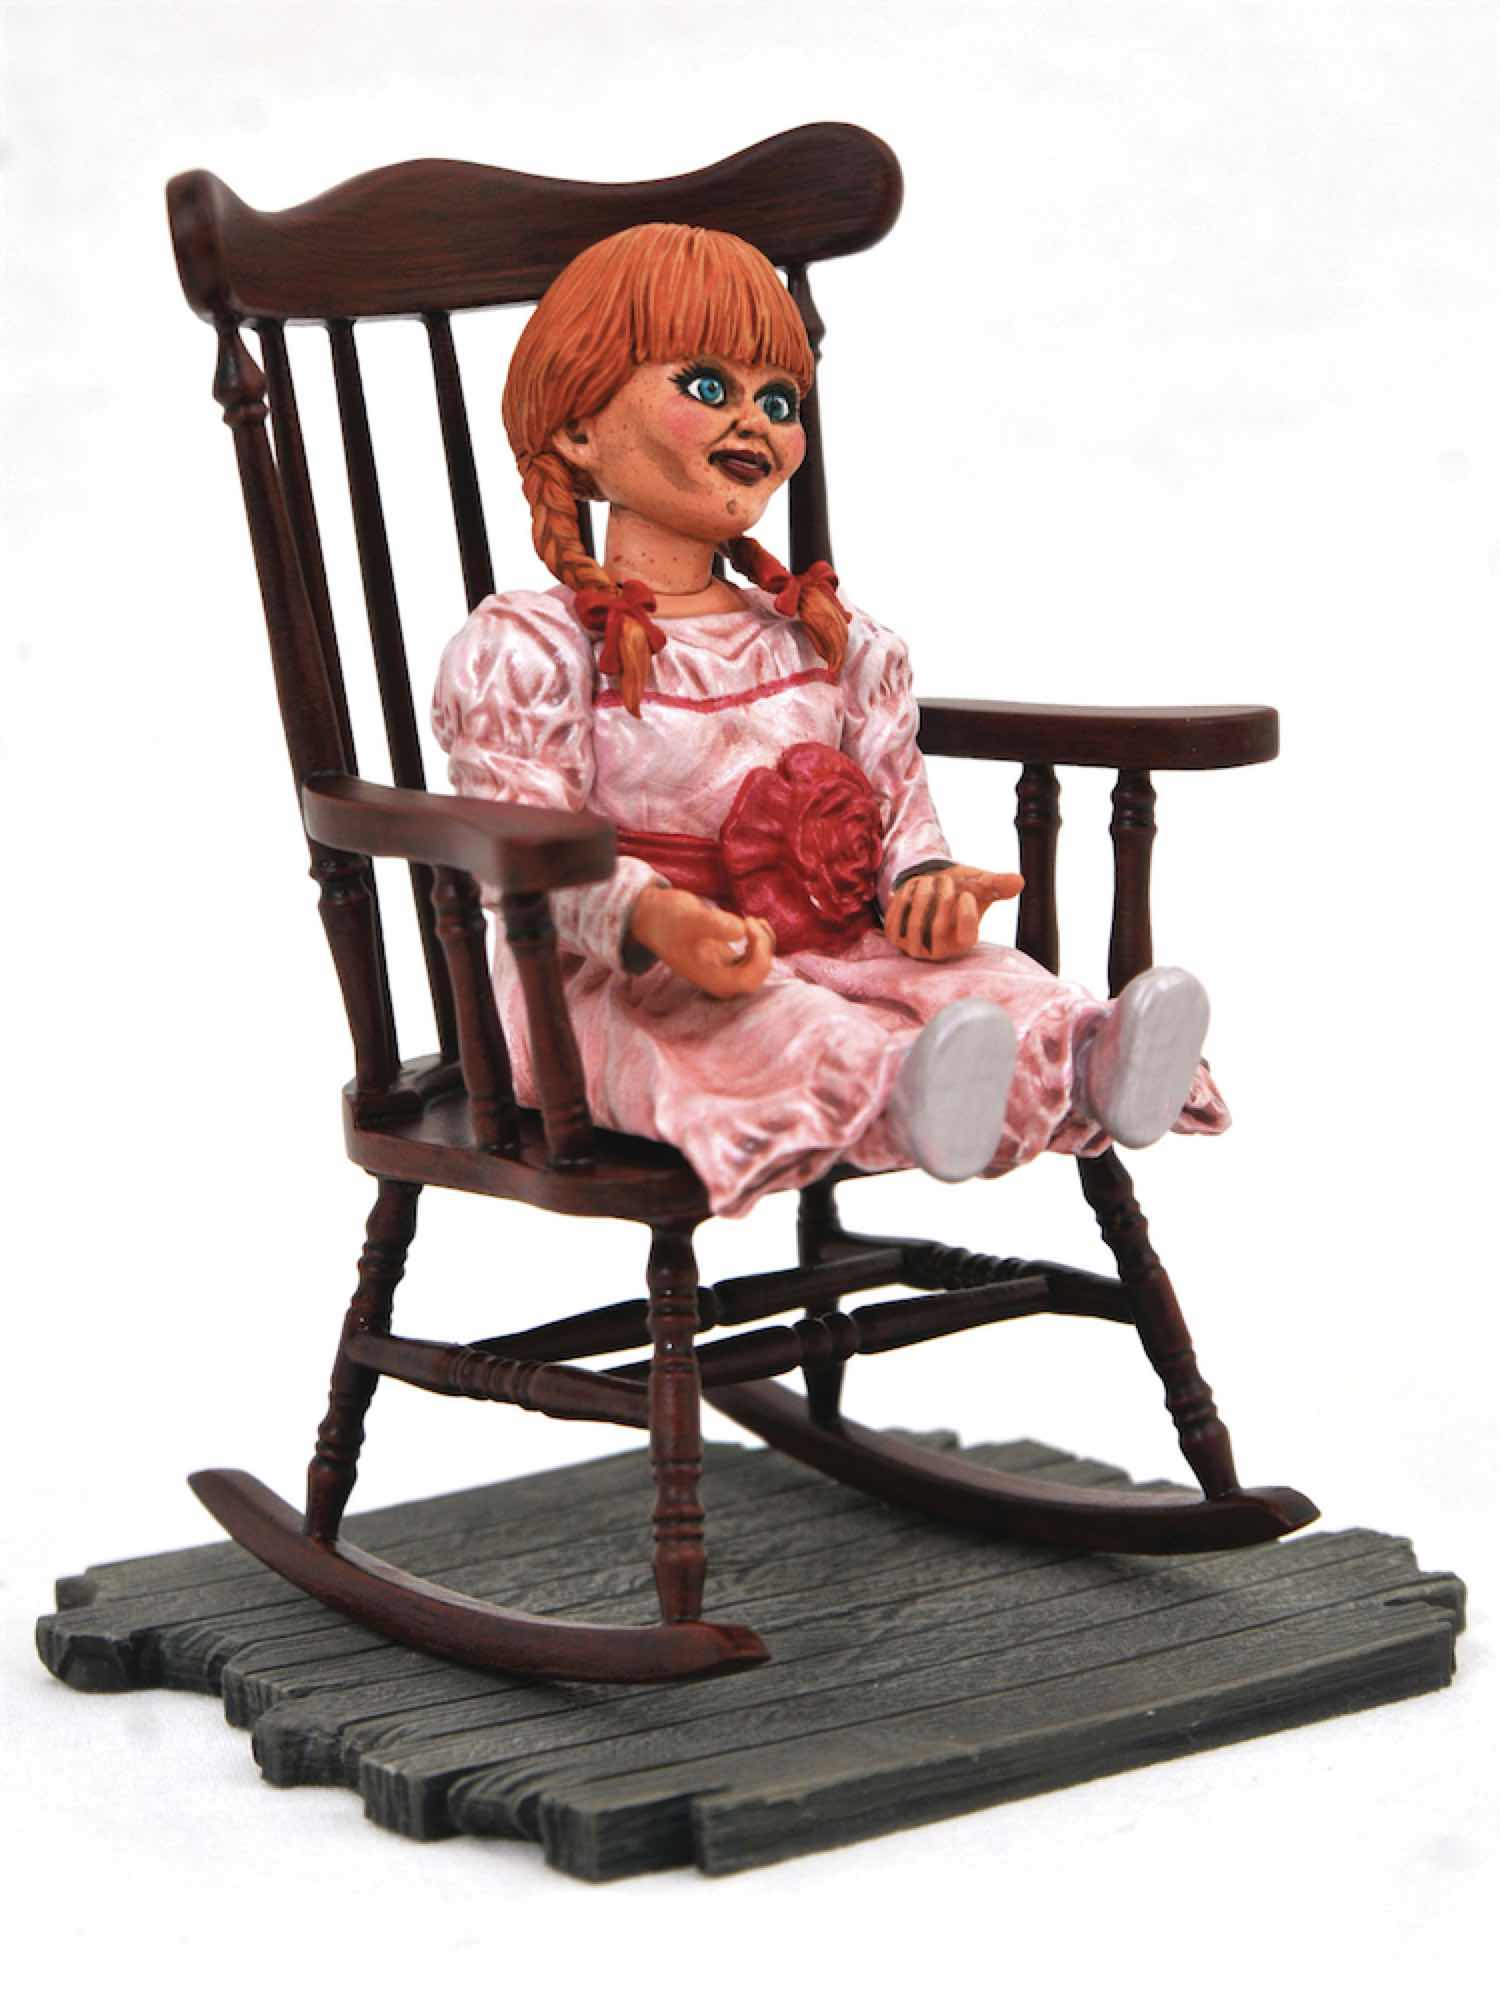 ANNABELLE PVC DIORAMA ESTATUA 23 CM HORROR MOVIE GALLERY ANNABELLE